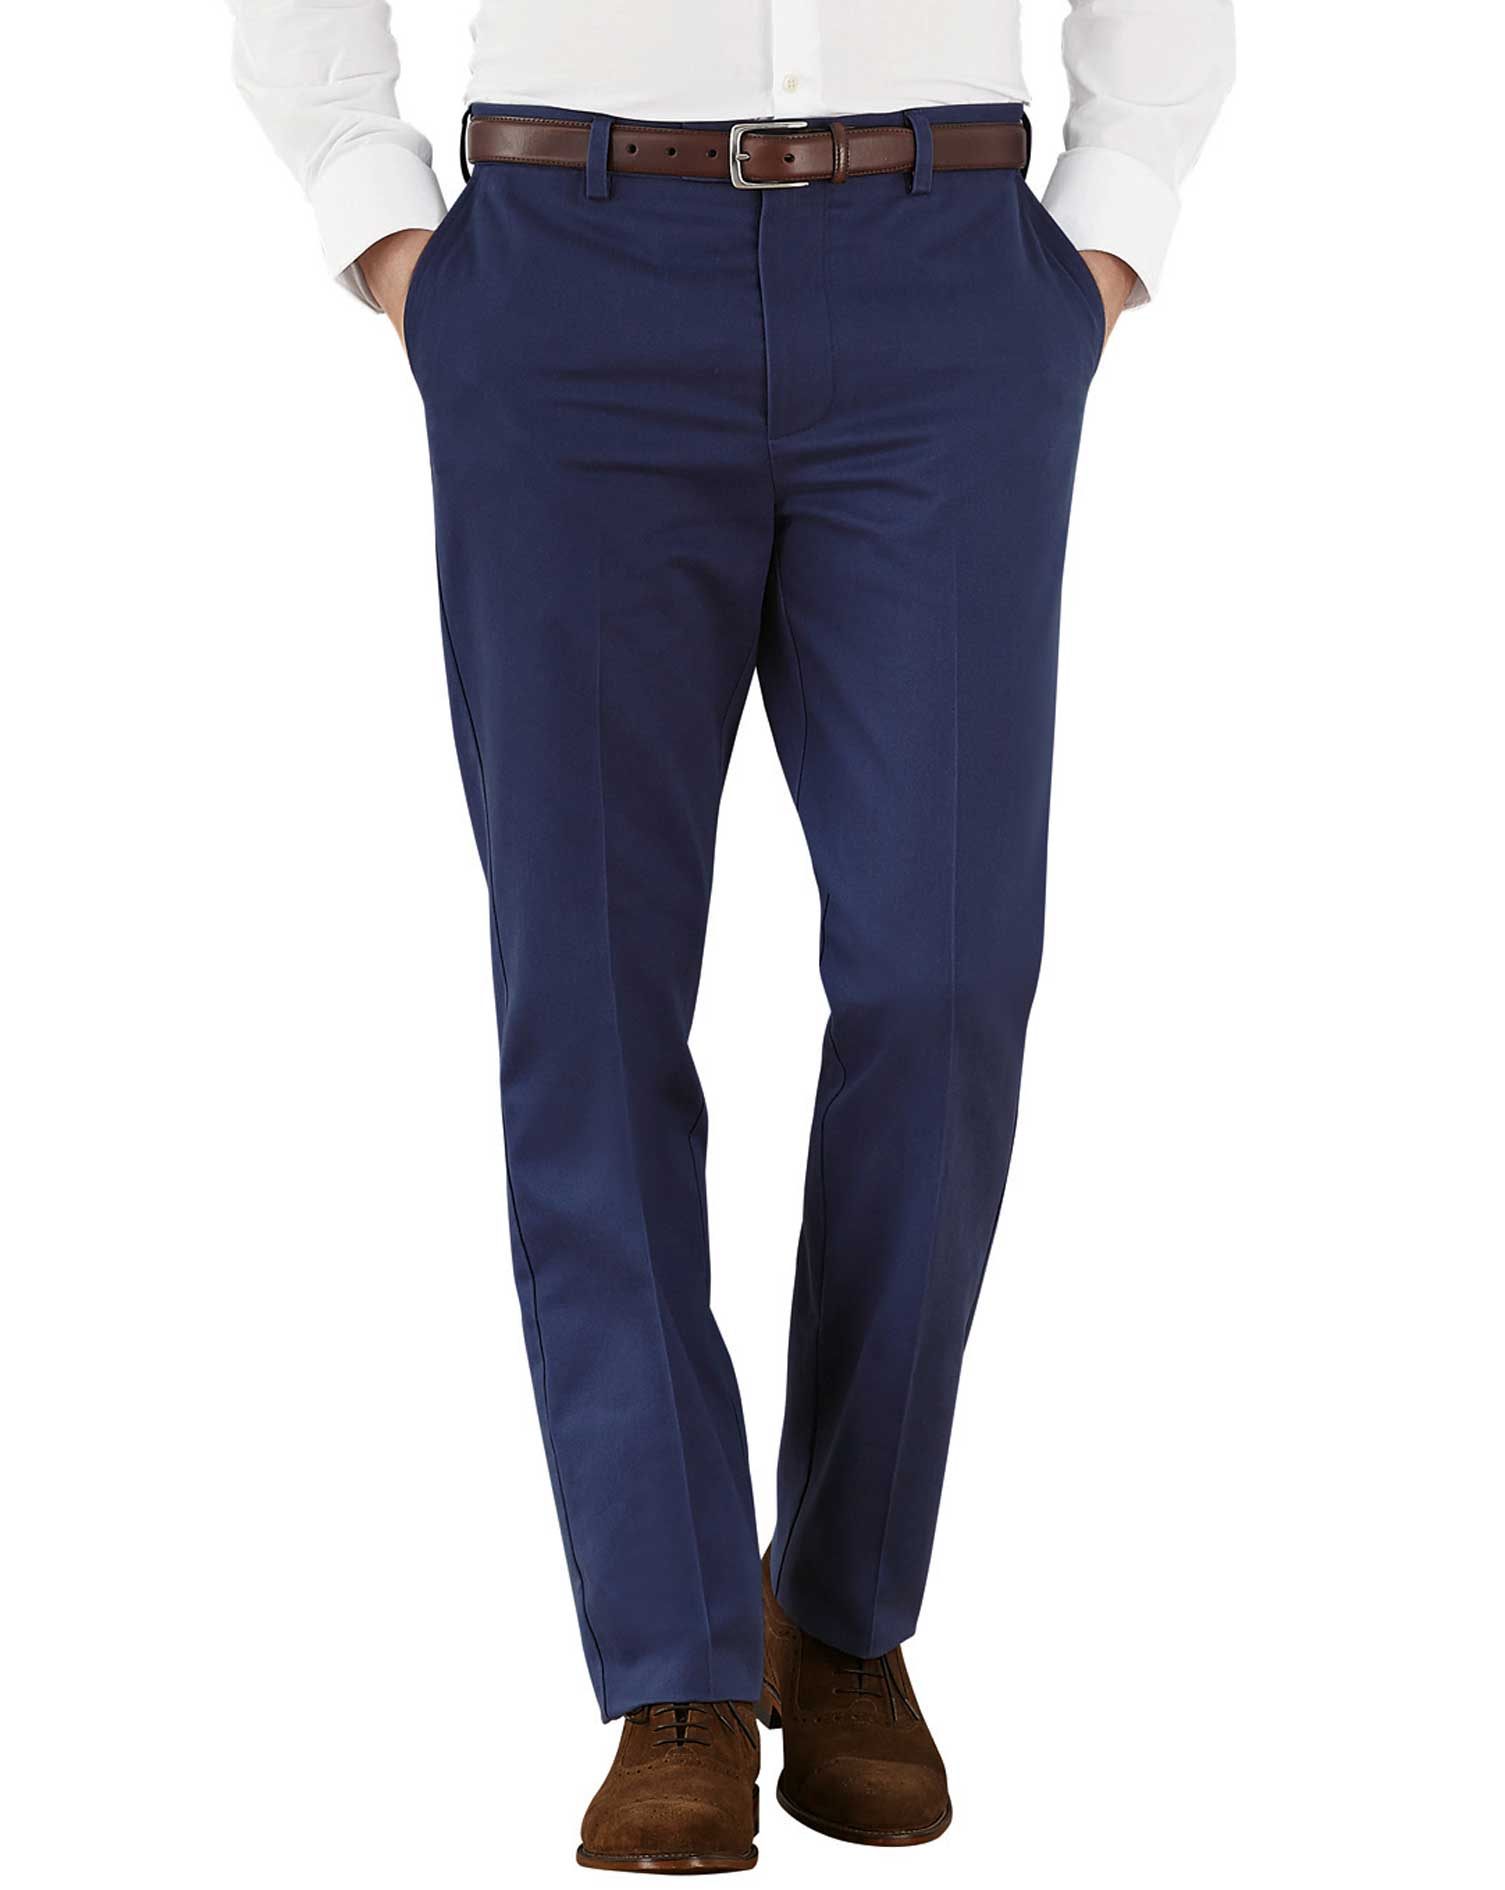 Marine Blue Slim Fit Flat Front Non-Iron Cotton Chino Trousers Size W34 L29 by Charles Tyrwhitt